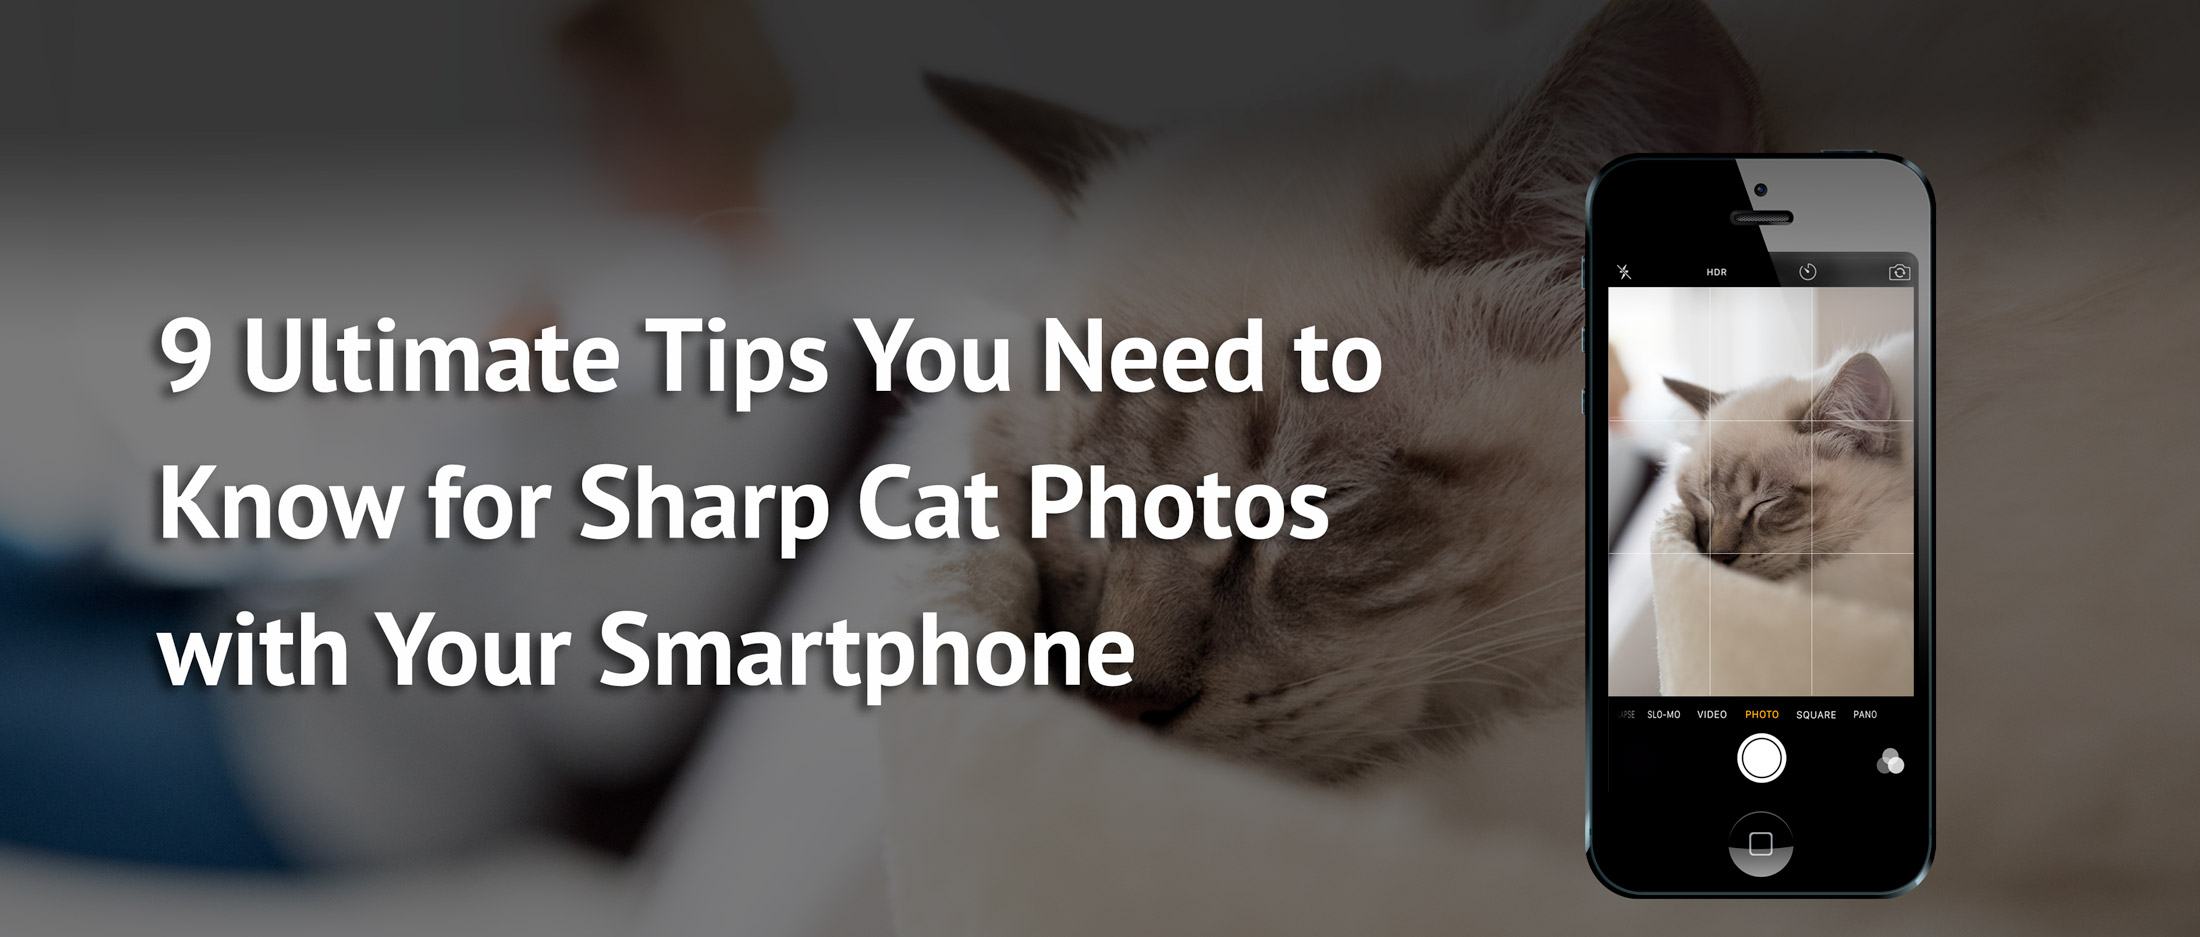 the best and ultimate tips for taking sharp pictures with your smartphone or iPhone